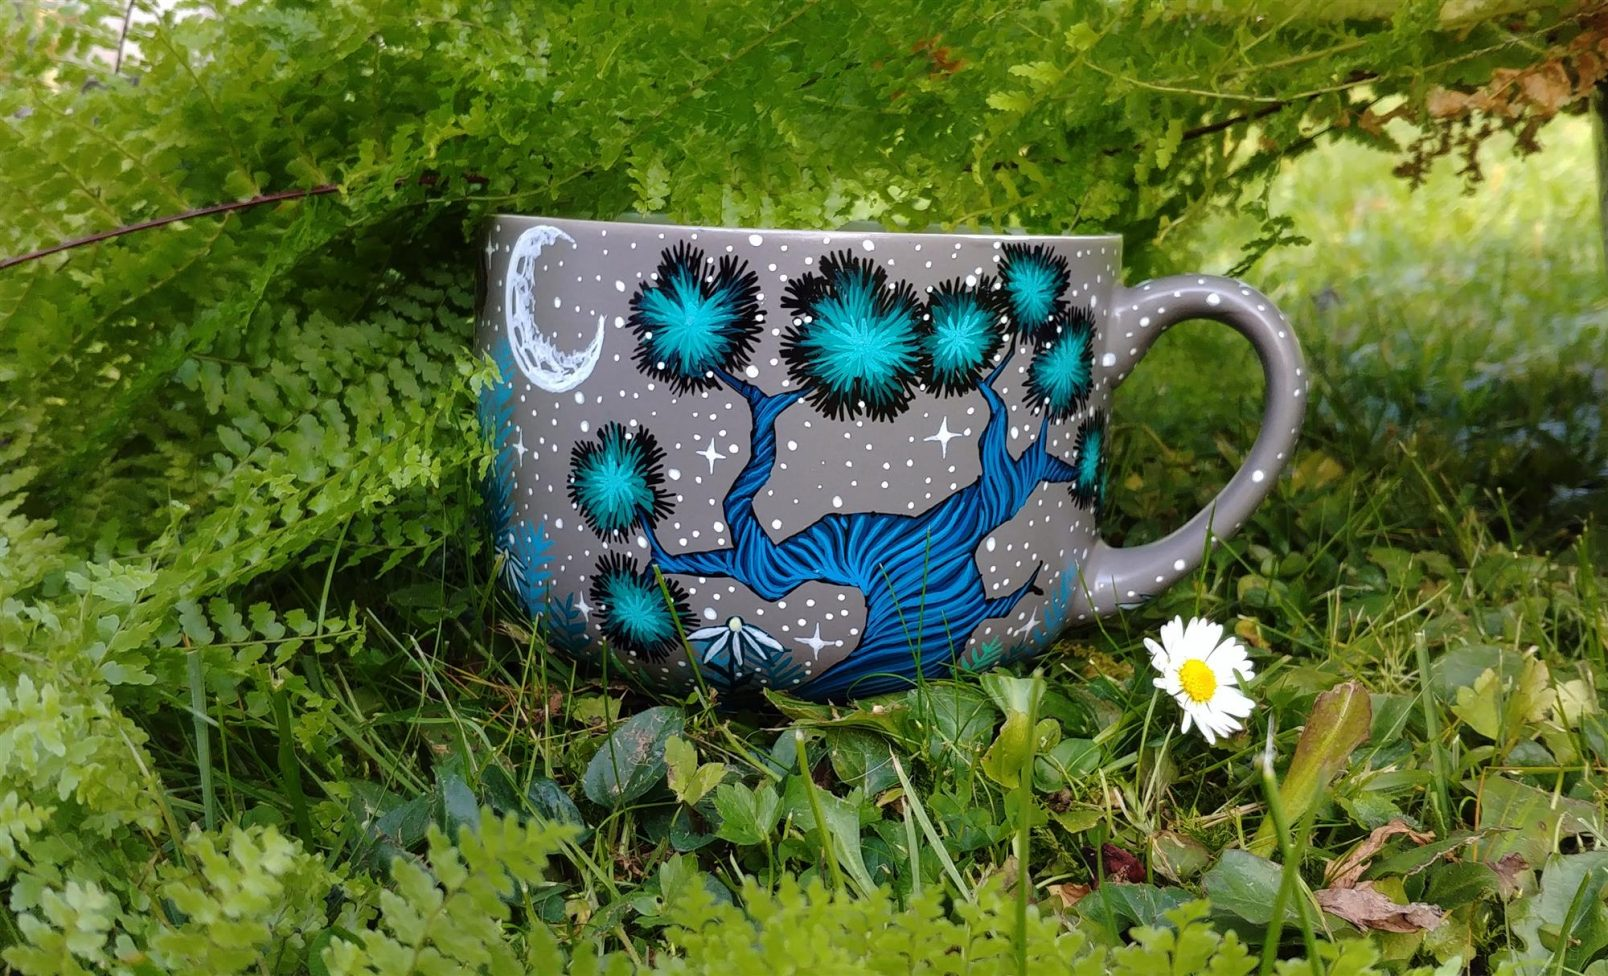 moon forest mug, coffe addict, tea mug, ceramic gift, hand painted animals, pet art, animal artist on etsy, animal art, illustration, nature art, pottery, custom art 4